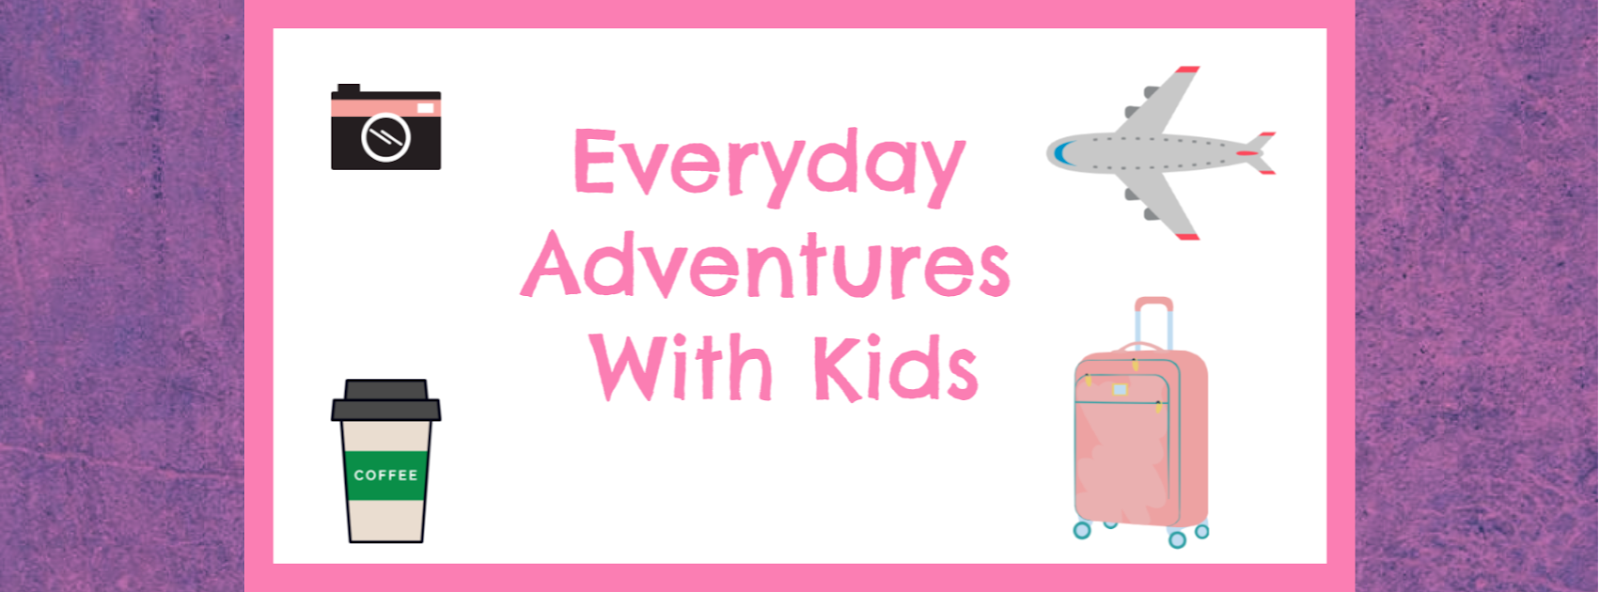 Everyday Adventures With Kids